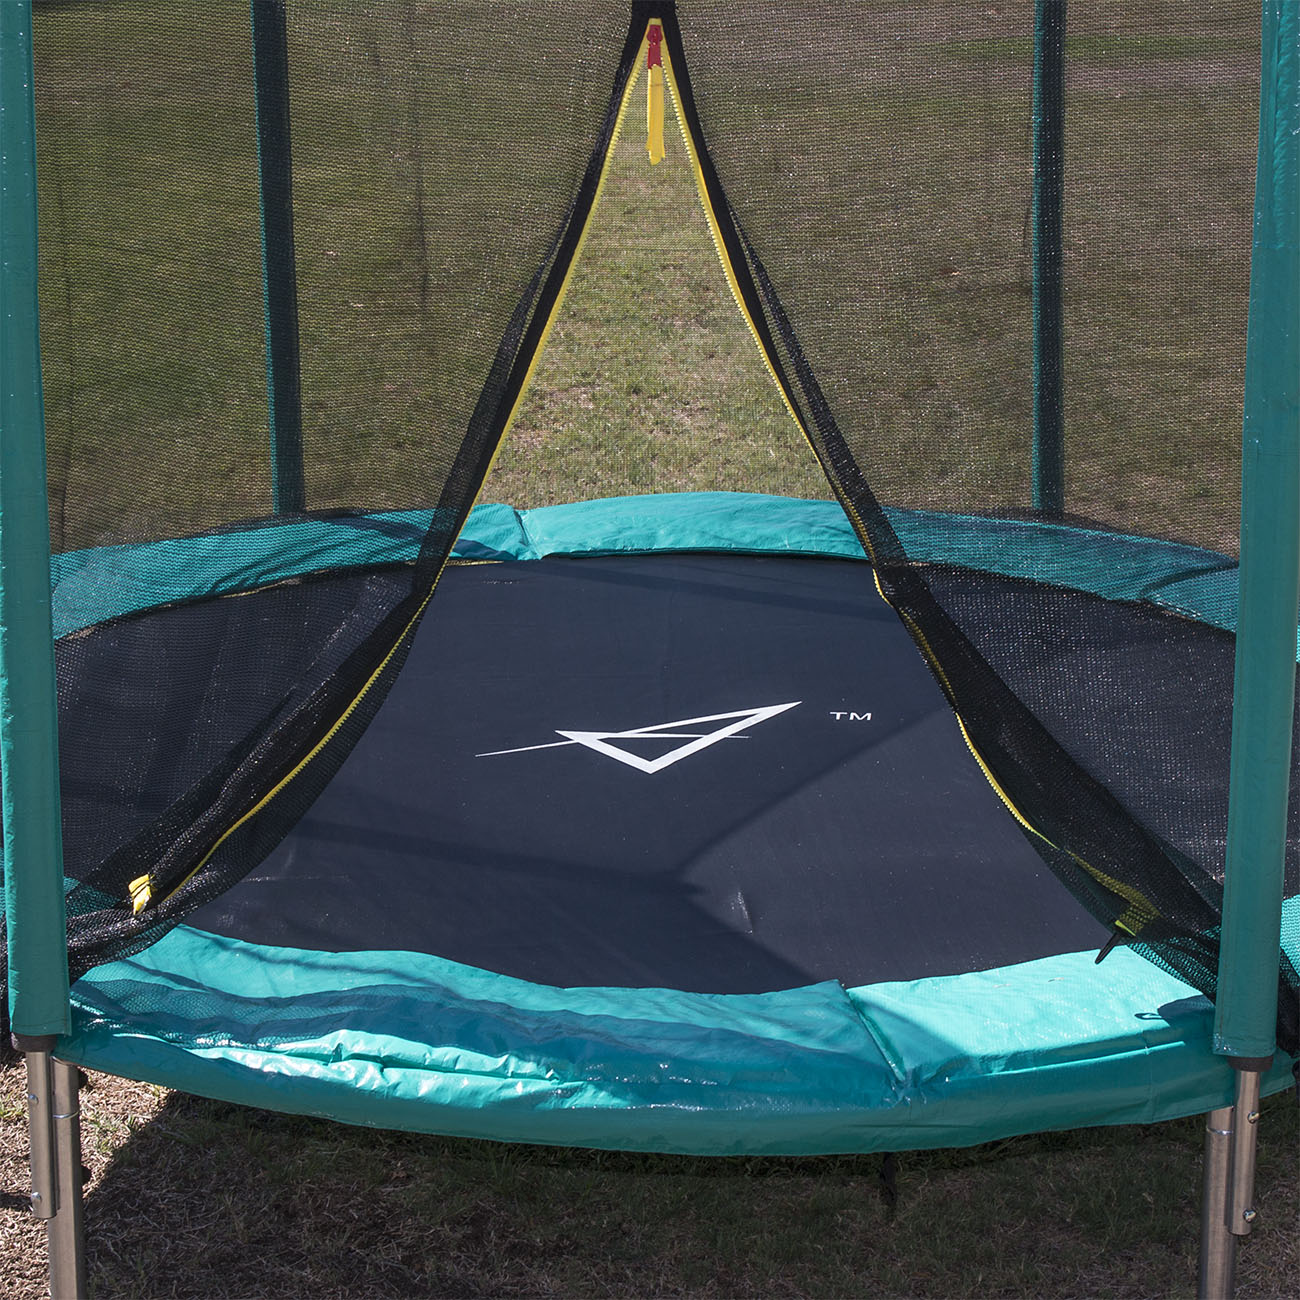 New 14ft Trampoline Combo Bounce Jump Safety Enclosure Net: 15 FT Trampoline Combo Bounce Jump Safety Enclosure Net